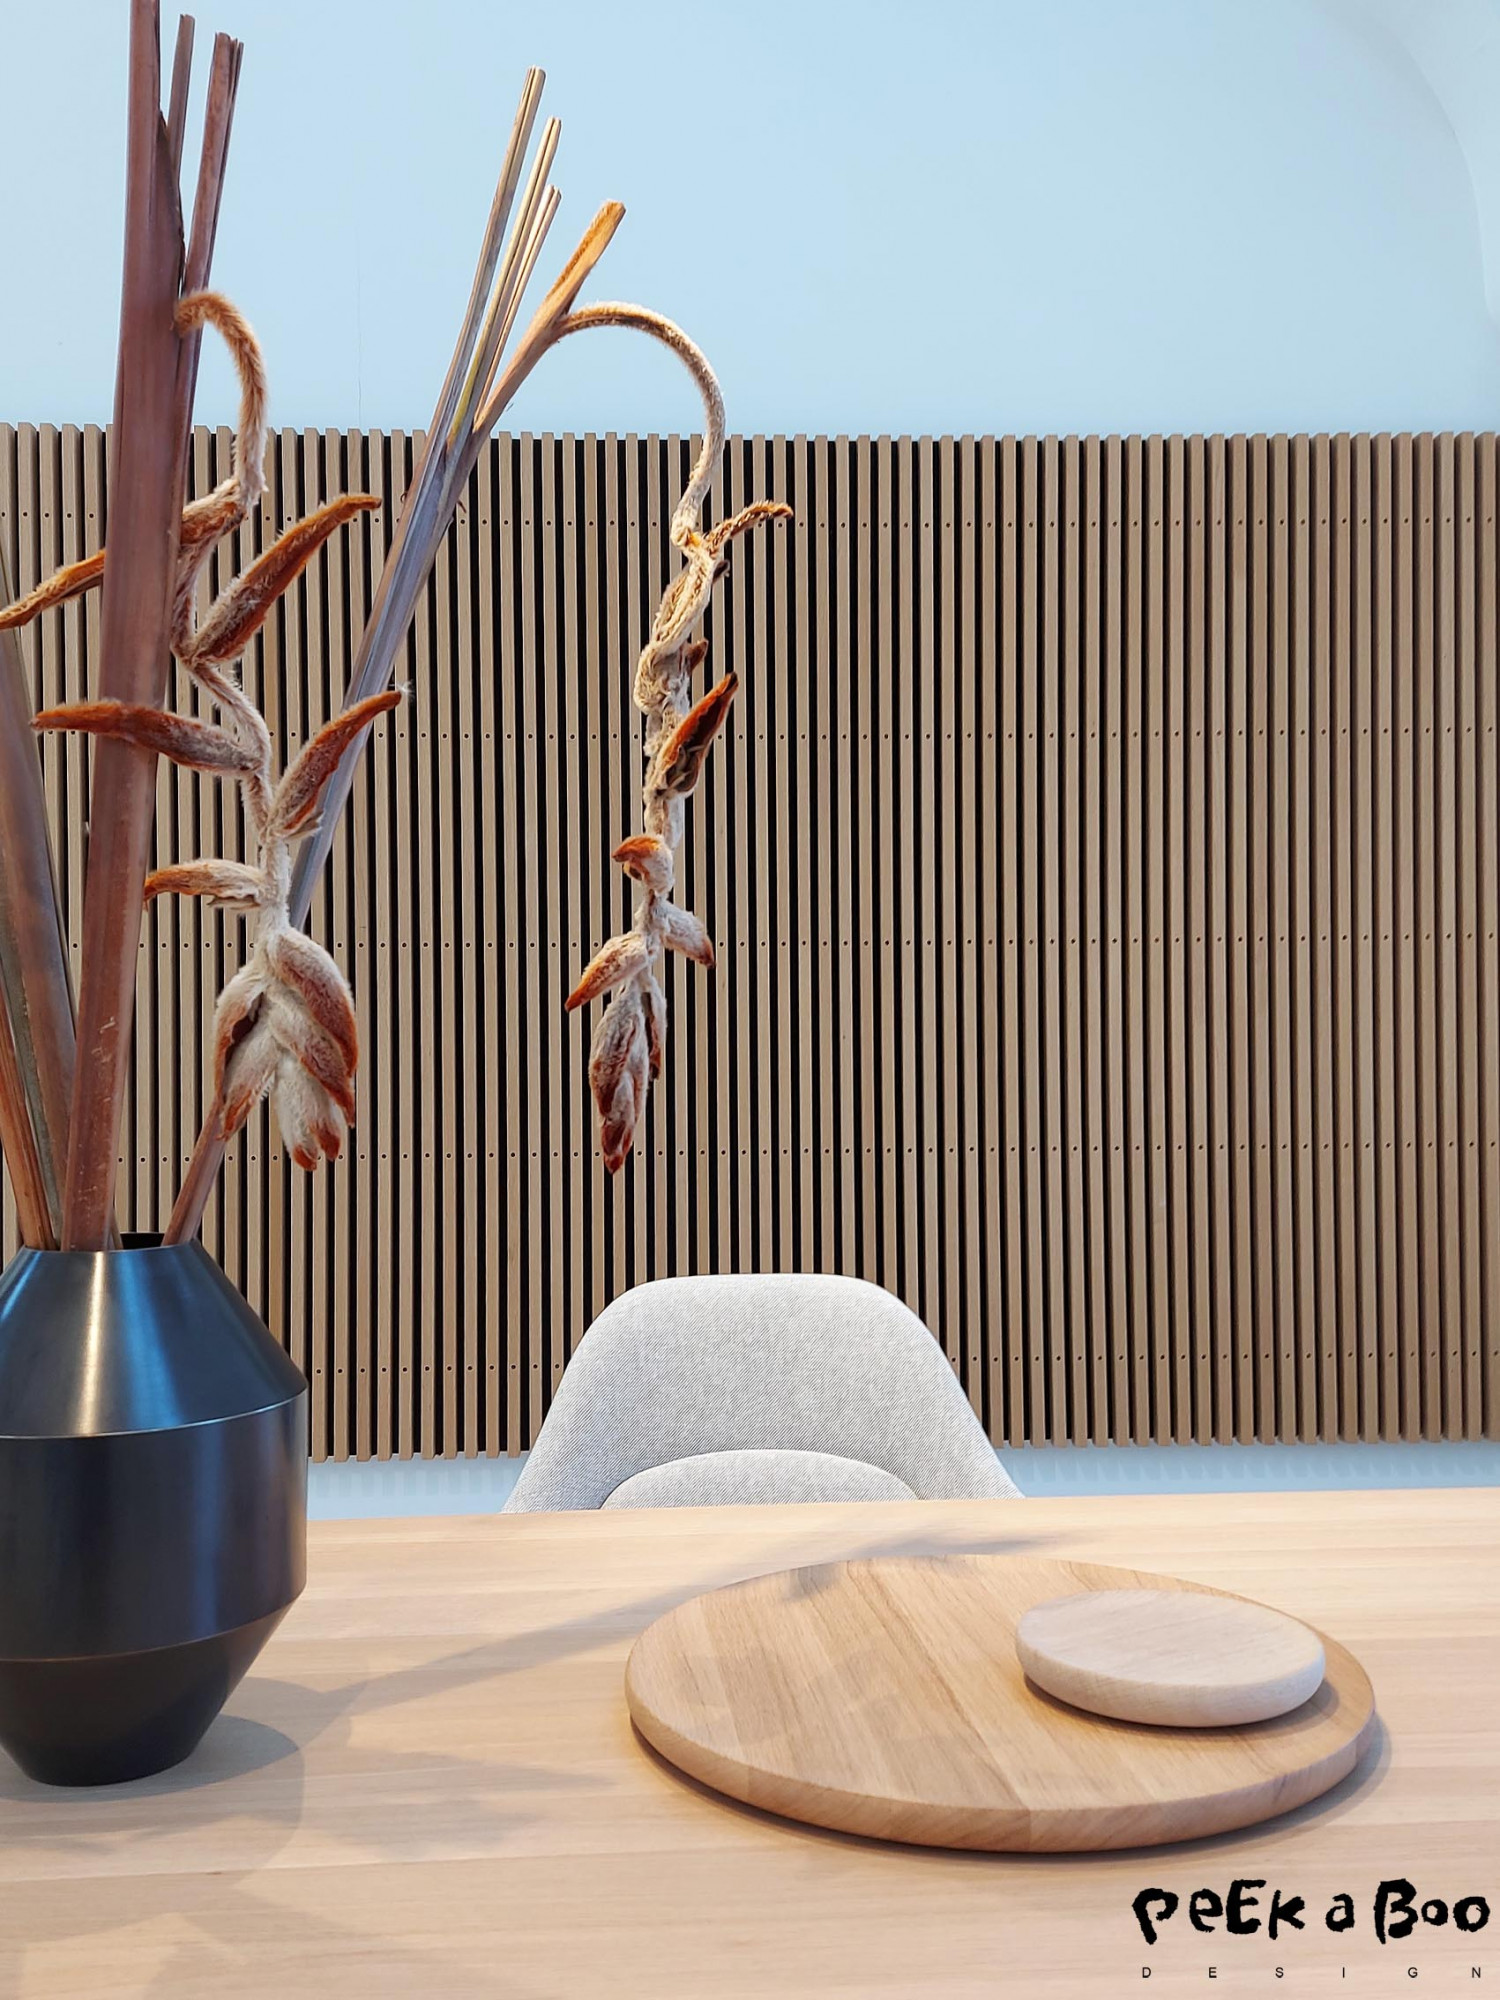 From Fredericia furniture came this new vase called hydro designed by Sofie Østerby